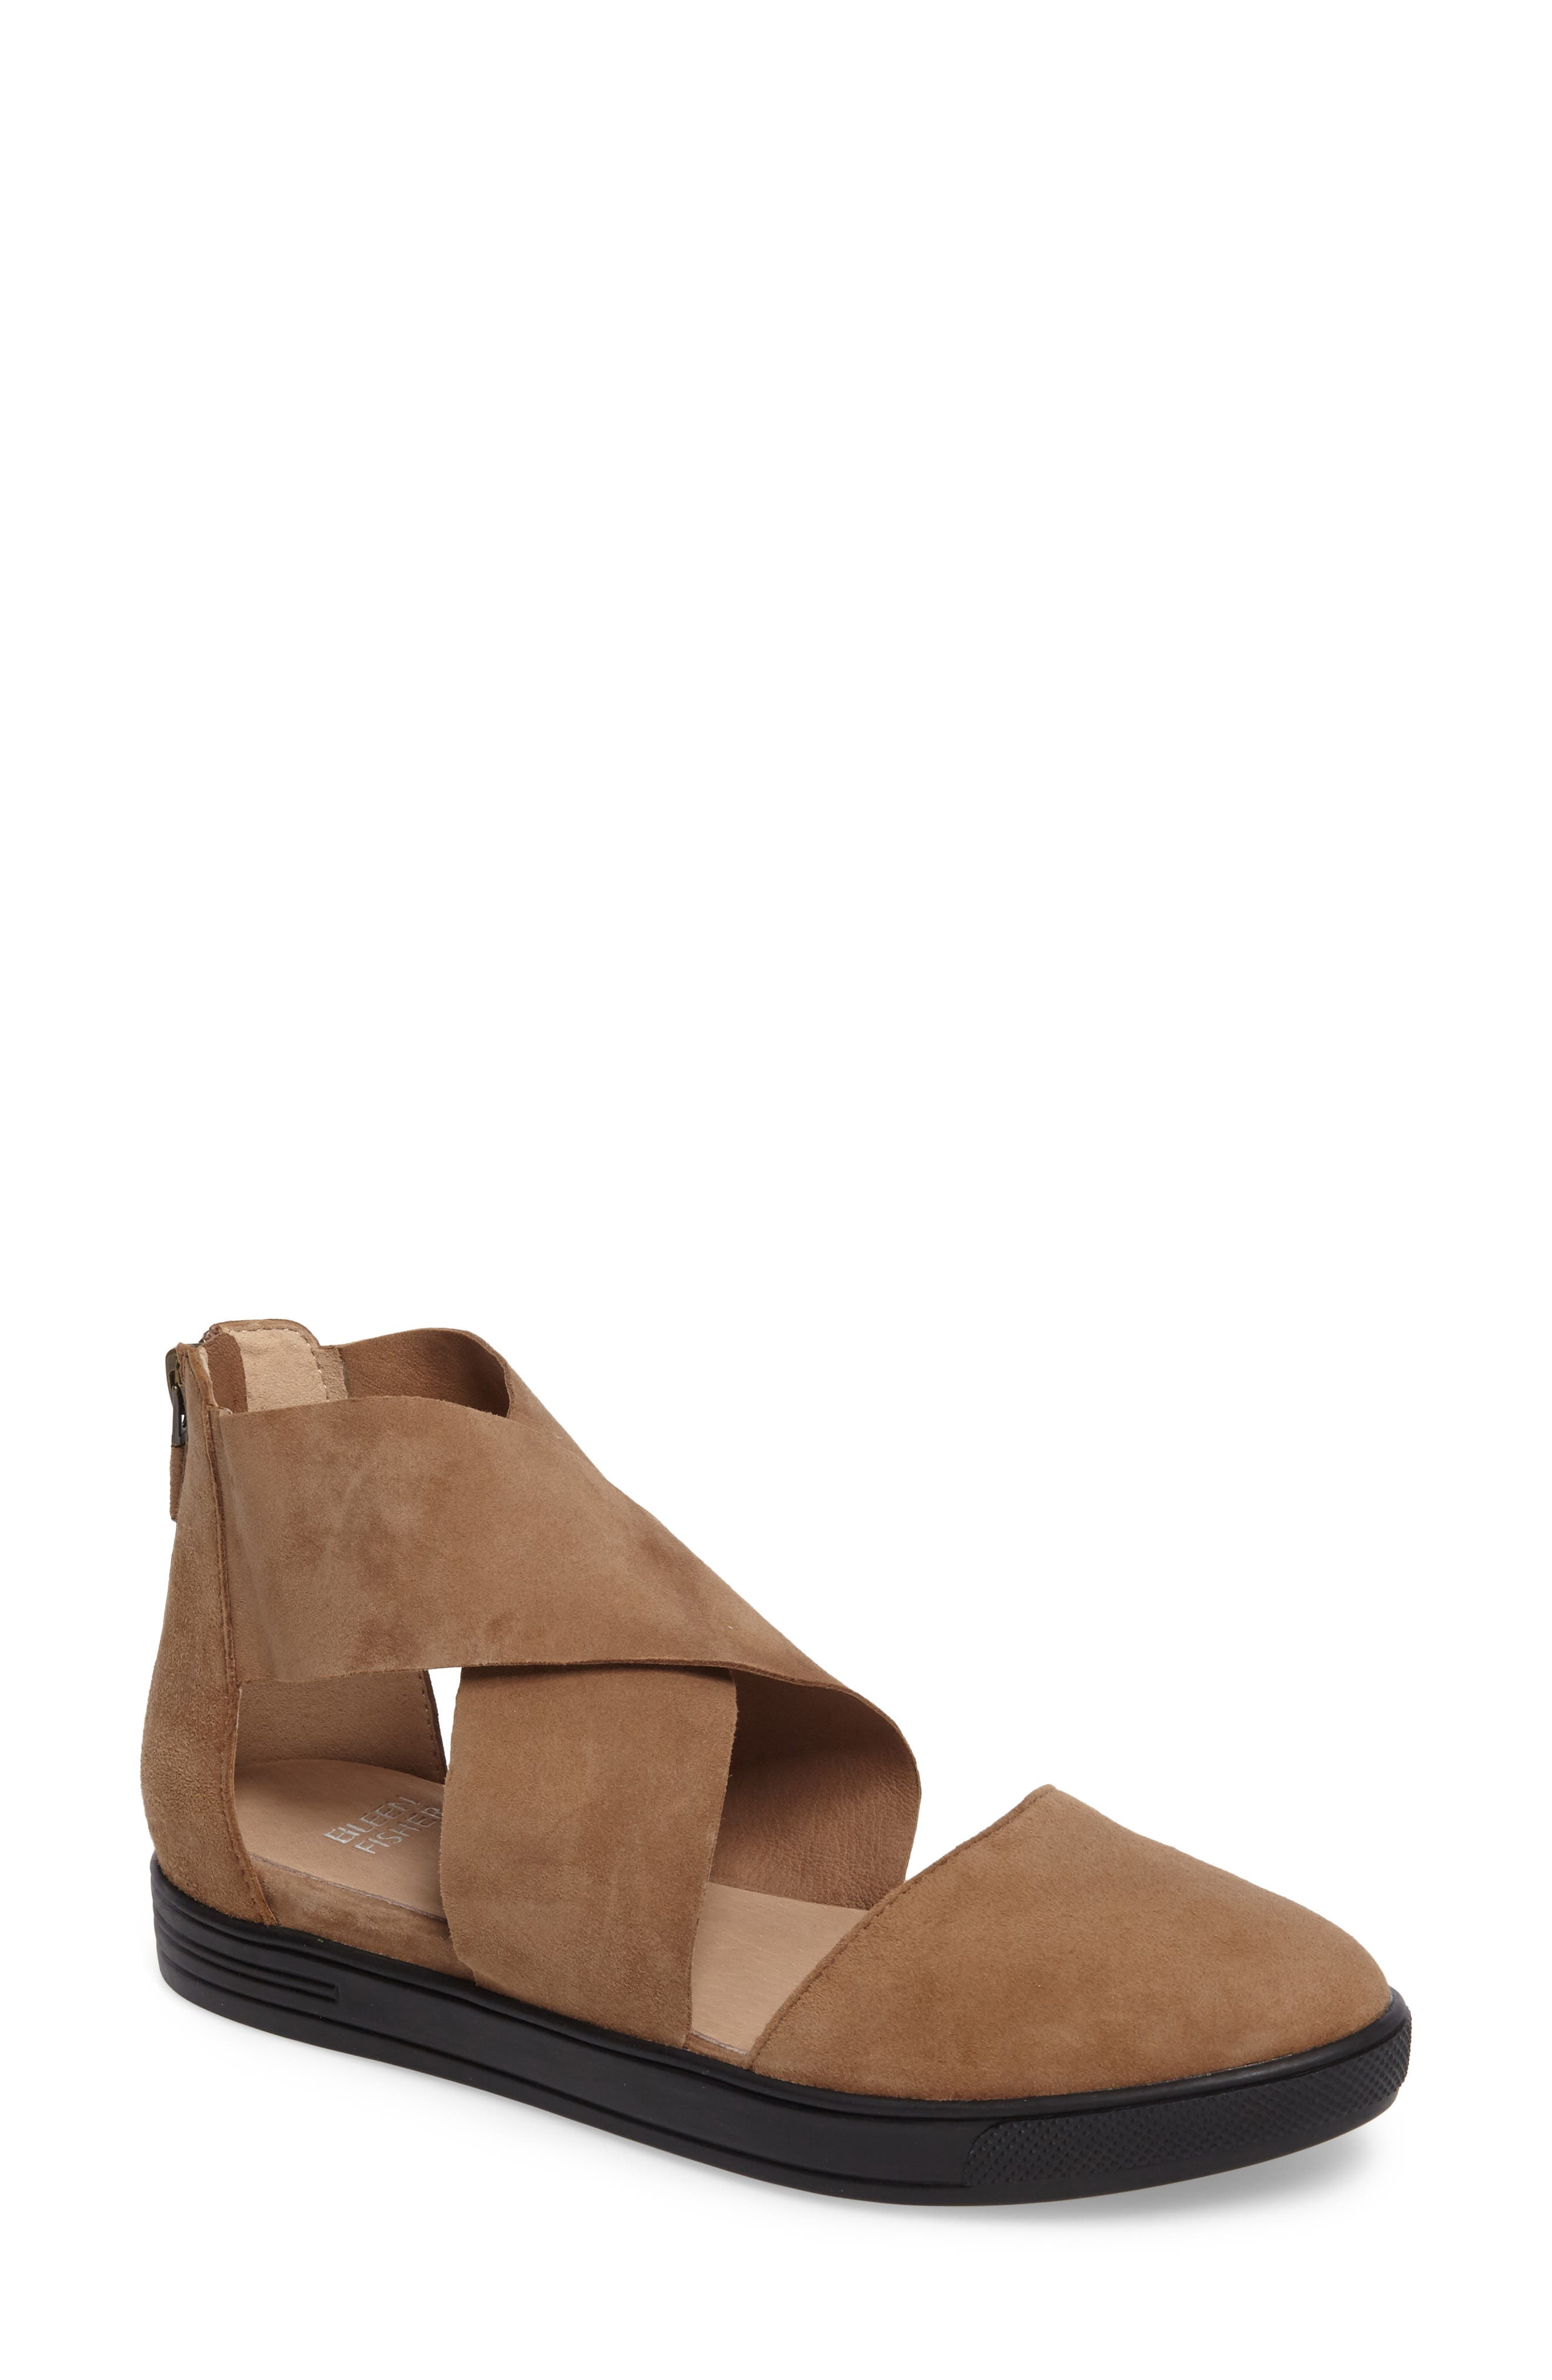 EILEEN FISHER Carver Flat, Main, color, 200